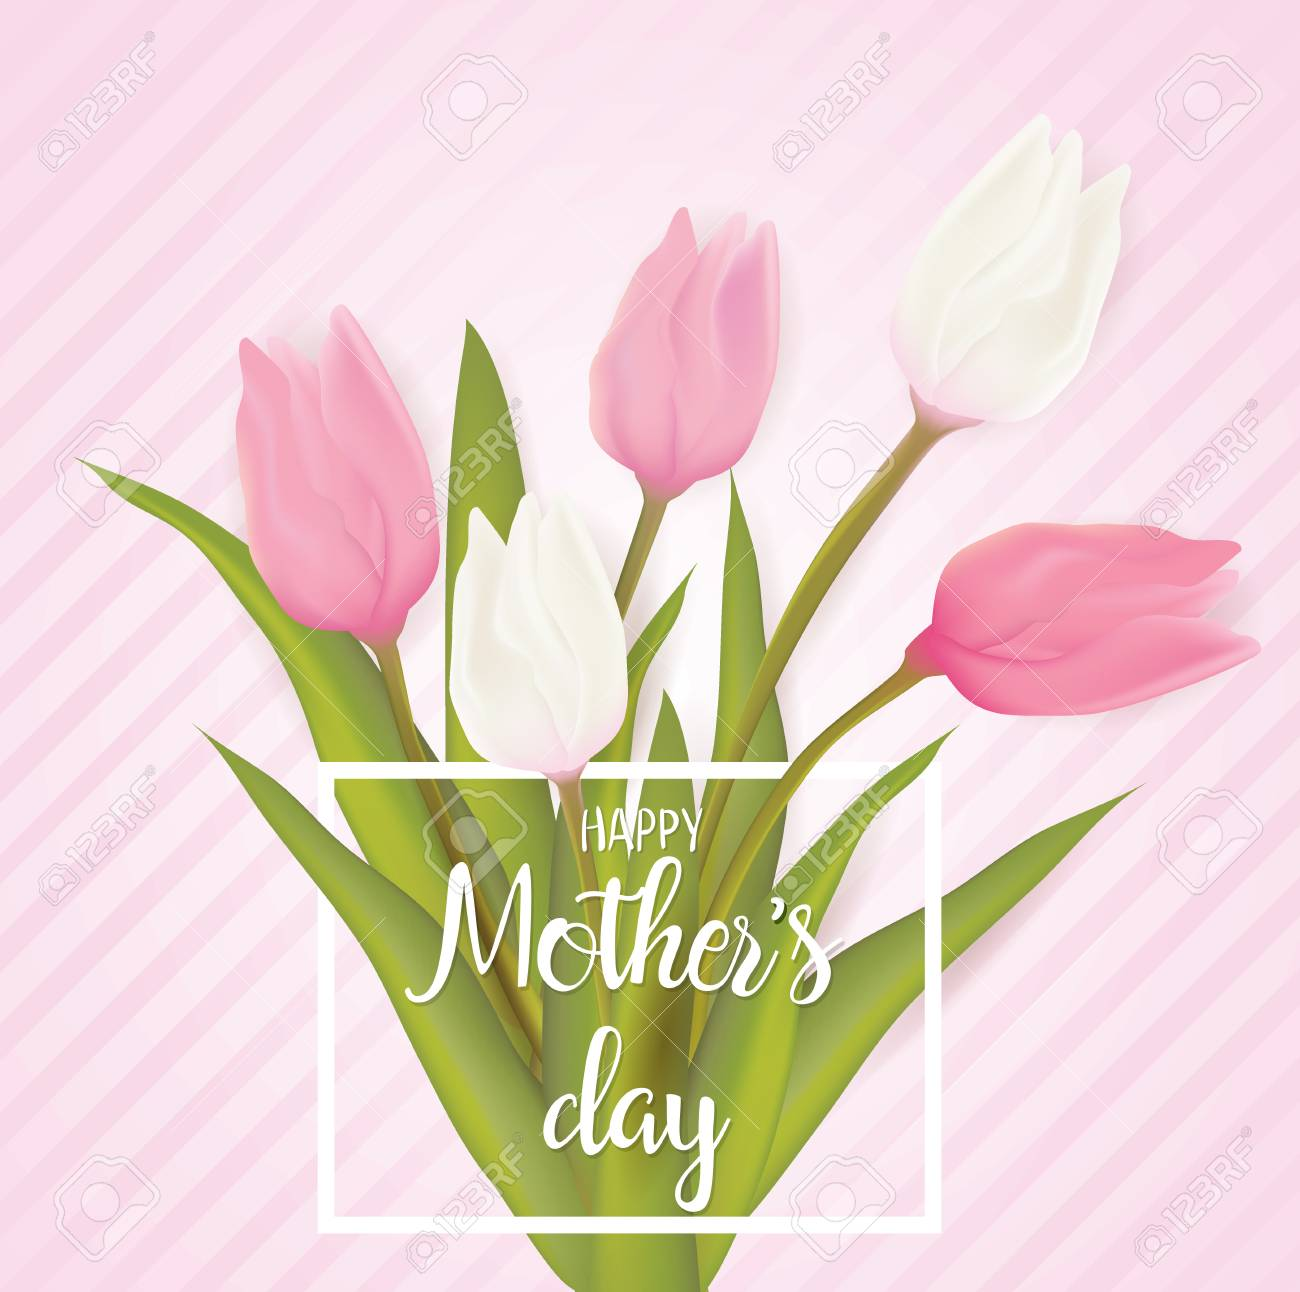 Mothers Day Greeting Card With Tulip Flowers With Typography